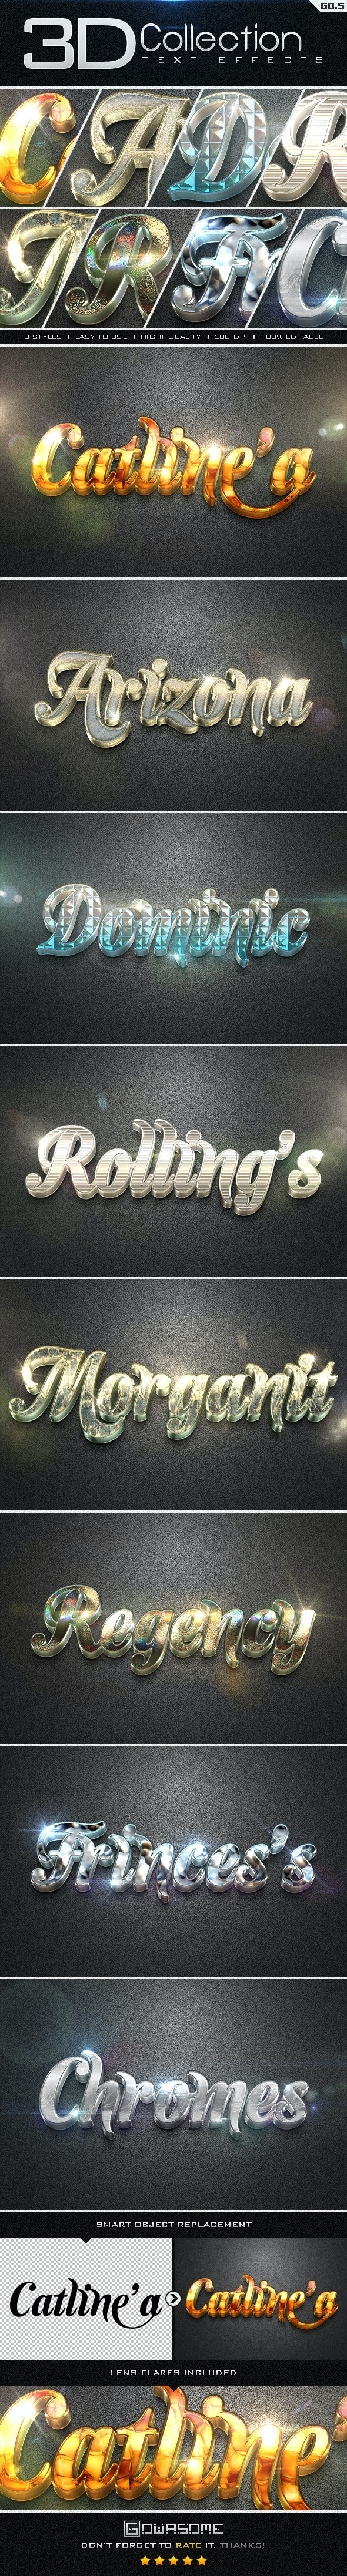 3D Collection Text Effects GO.5 - Text Effects Styles